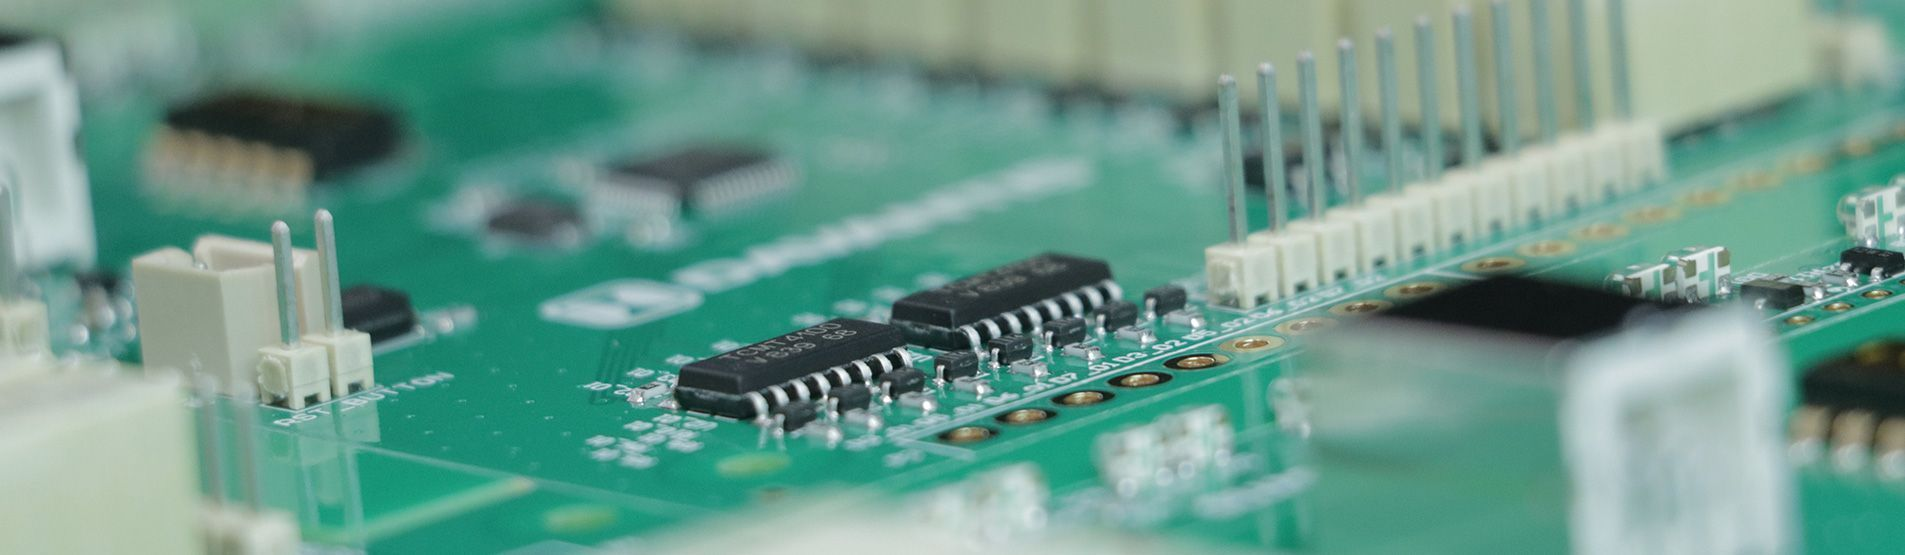 engineering_services_pcb_electronic_circuit_accent_systems